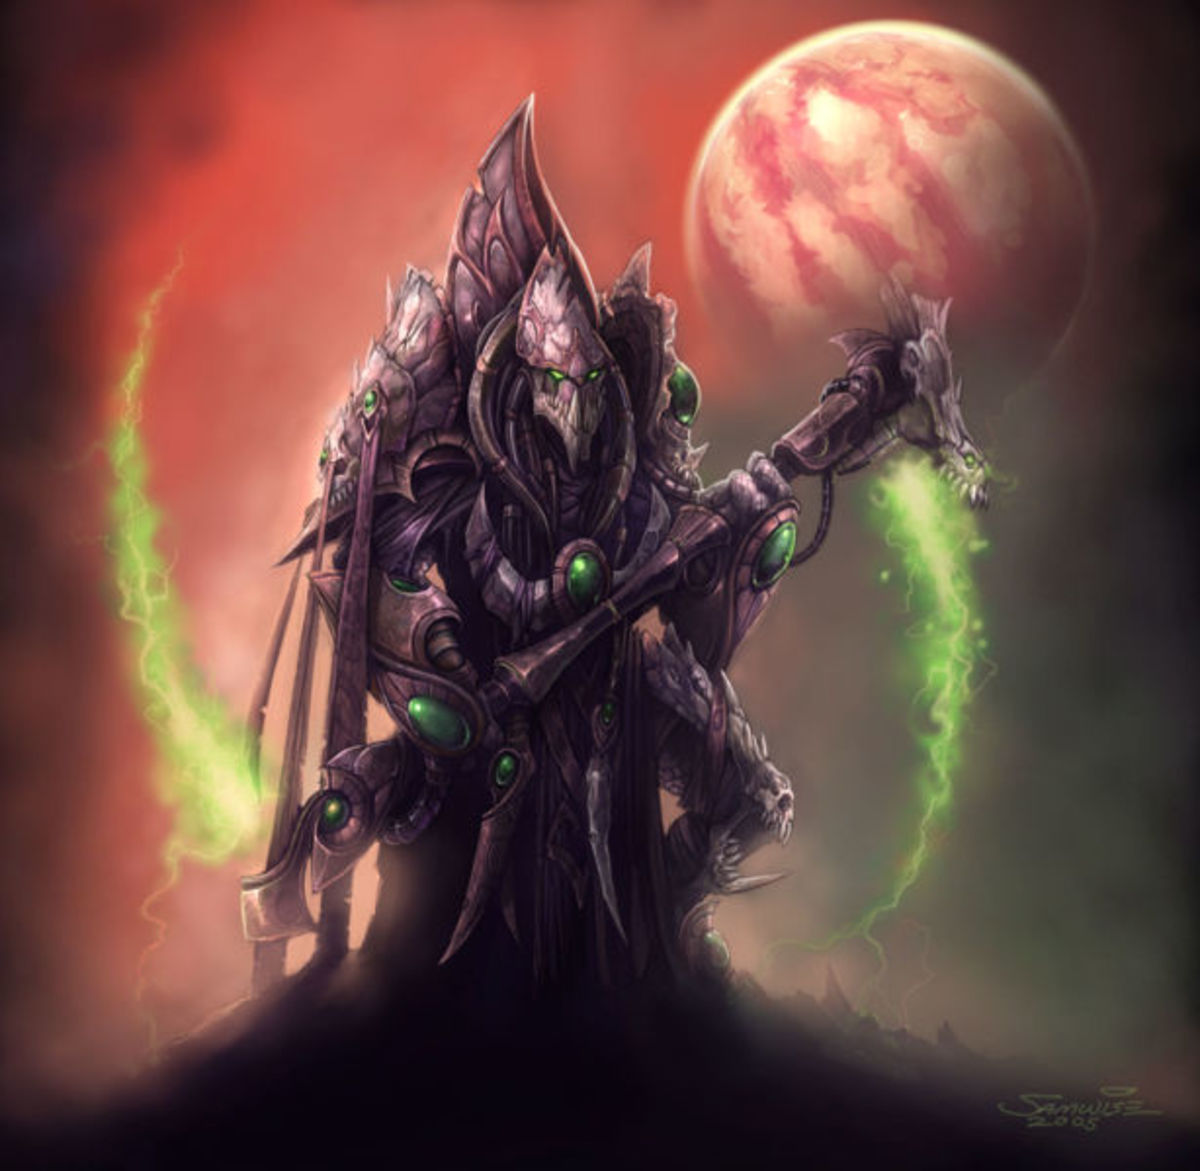 StarCraft 2 - A Protoss creature named Dark Templar